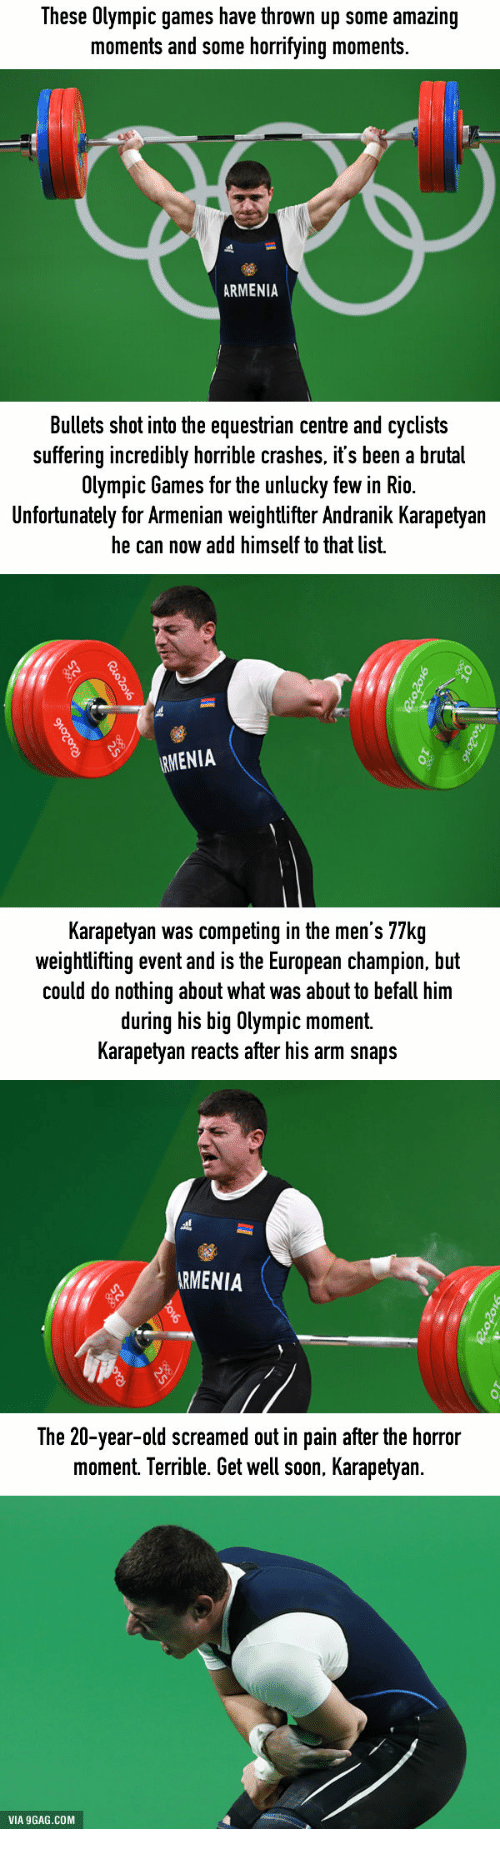 Unluckiness: These Olympic games have thrown up  some amazing  moments and some horrifying moments.  ARMENIA  Bullets shot into the equestrian centre and cyclists  suffering incredibly horrible crashes, it's been a brutal  Olympic Games for the unlucky few in Rio.  Unfortunately for Armenian weightlifter Andranik Karapetyan  he can now add himself to that list.  RMENIA  Karapetyan was competing in the men's 77kg  weightlifting event and is the European champion, but  could do nothing about what was about to befall him  during his big Olympic moment.  Karapetyan reacts after his arm snaps  ARMENIA  The 20-year-old screamed out in pain after the horror  moment. Terrible. bet well soon, Karapetyan  VIA 9GAG.COM